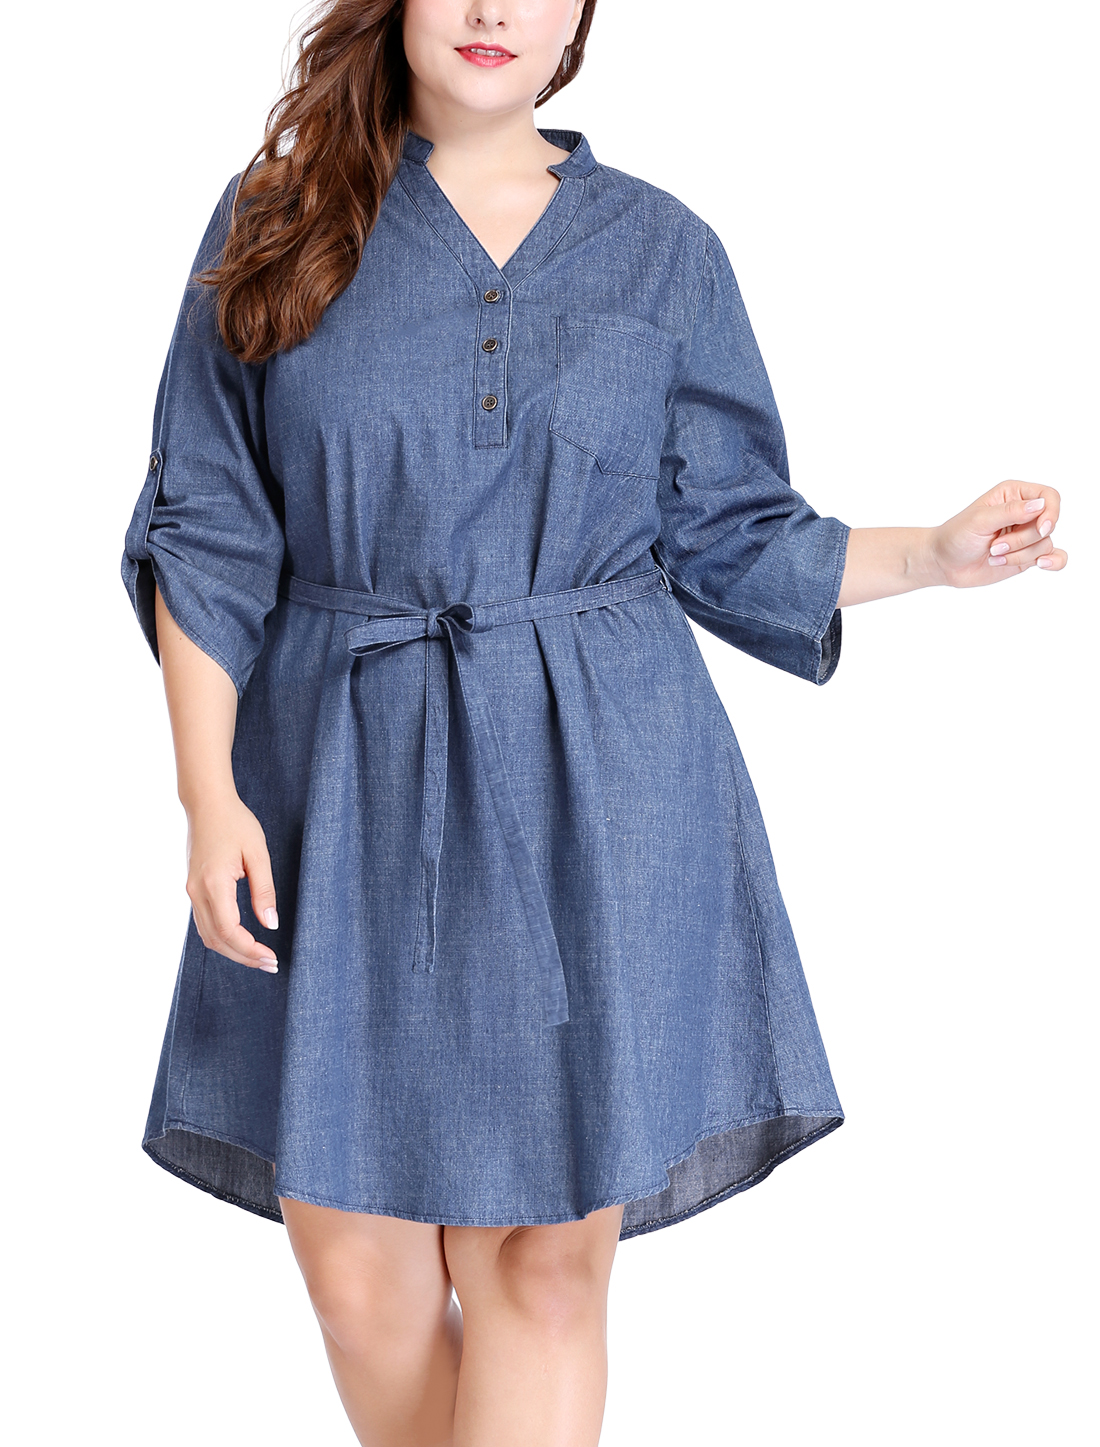 Women Plus Size Roll Up Sleeves Above Knee Belted Denim Dress Blue 1X